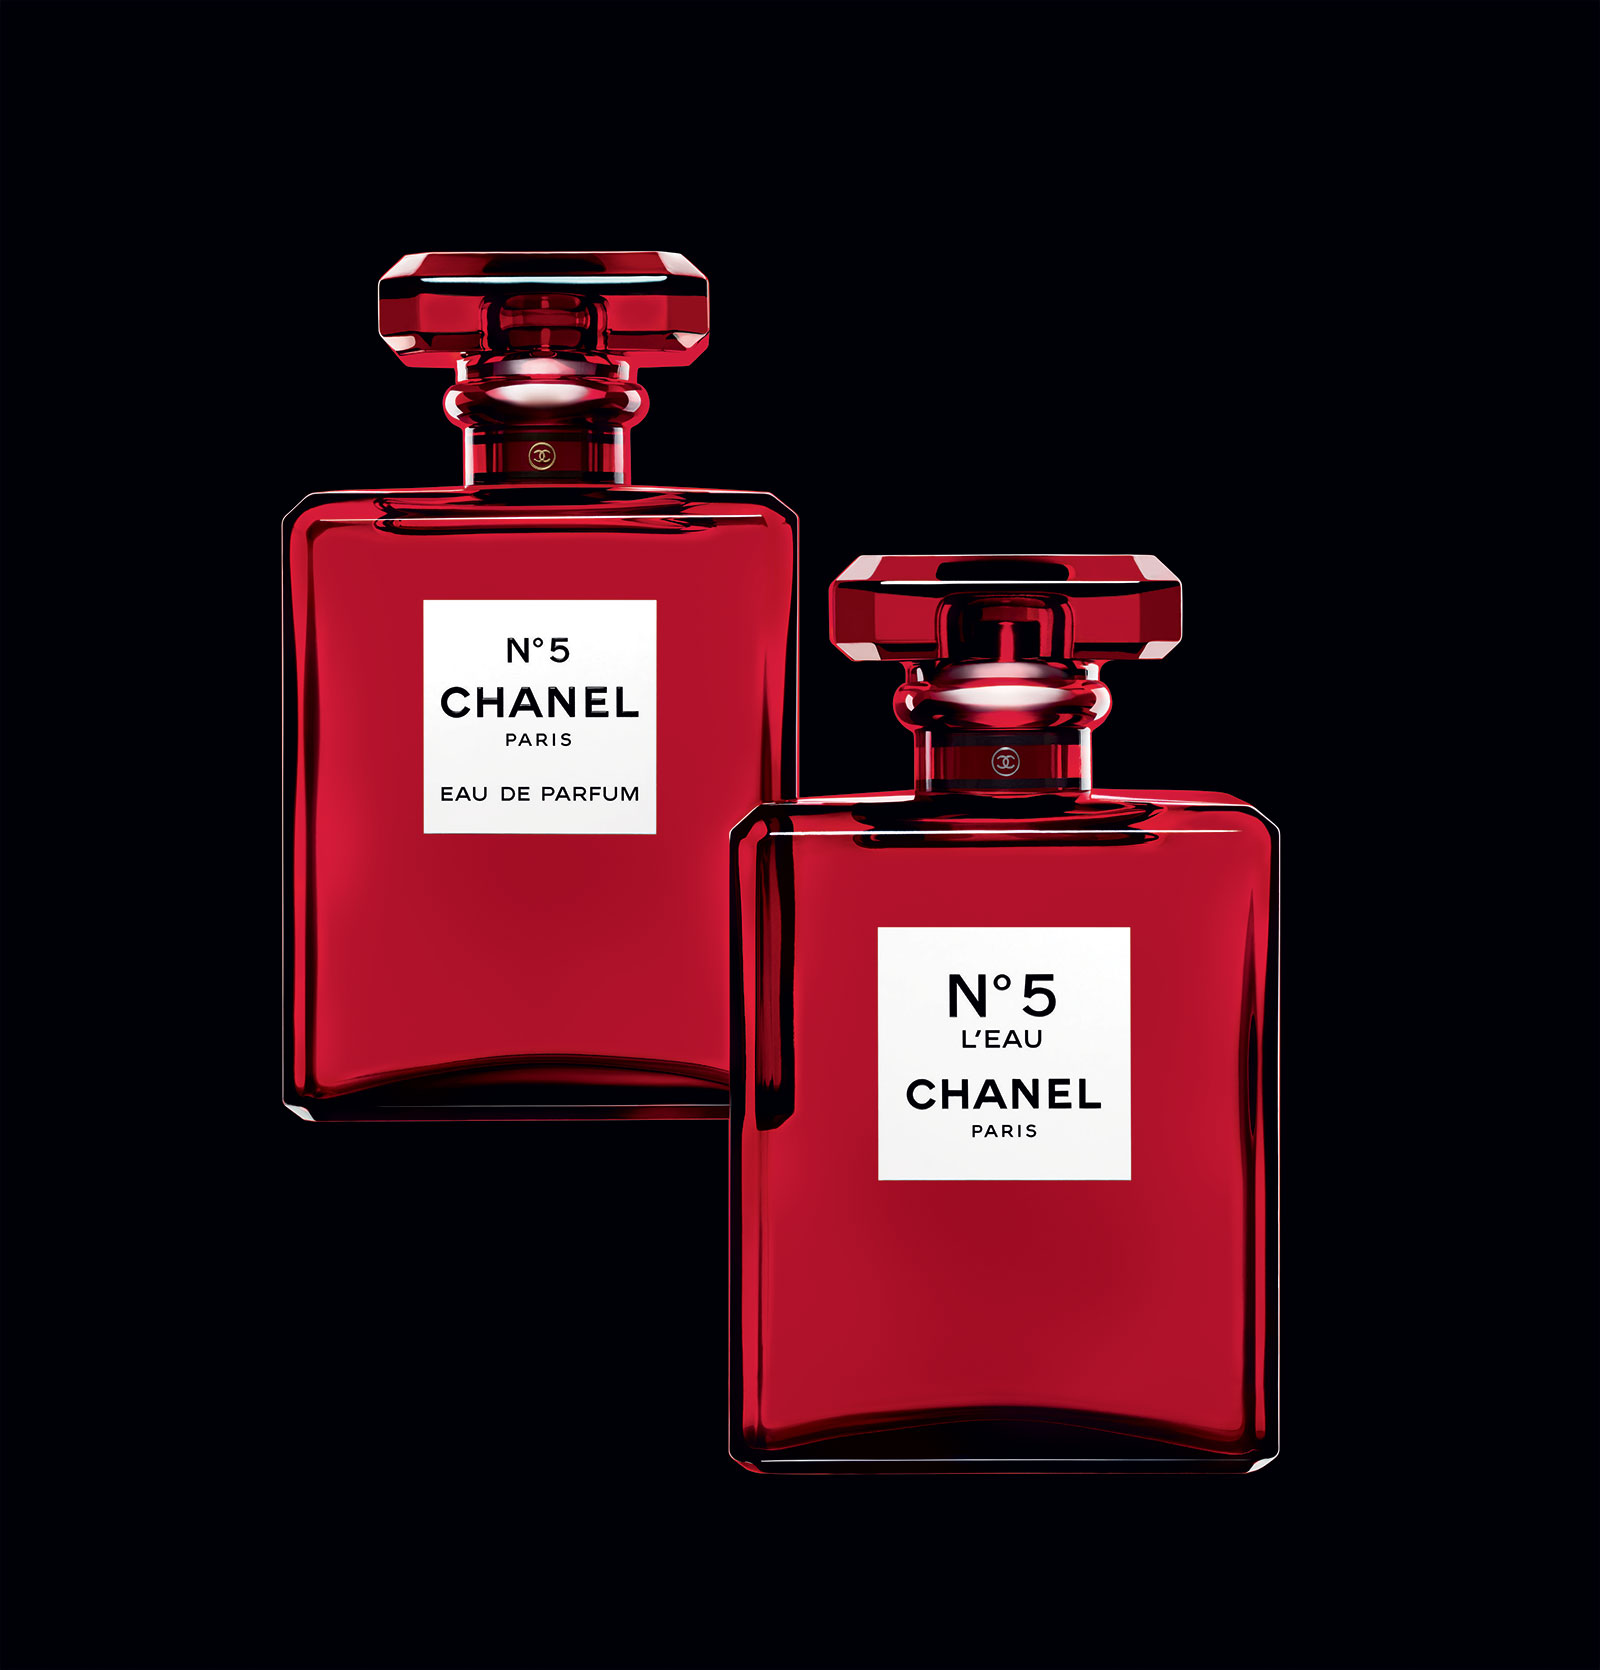 Chanel No 5 L Eau Red Edition Chanel perfume - a new fragrance for ... 7007f046f6